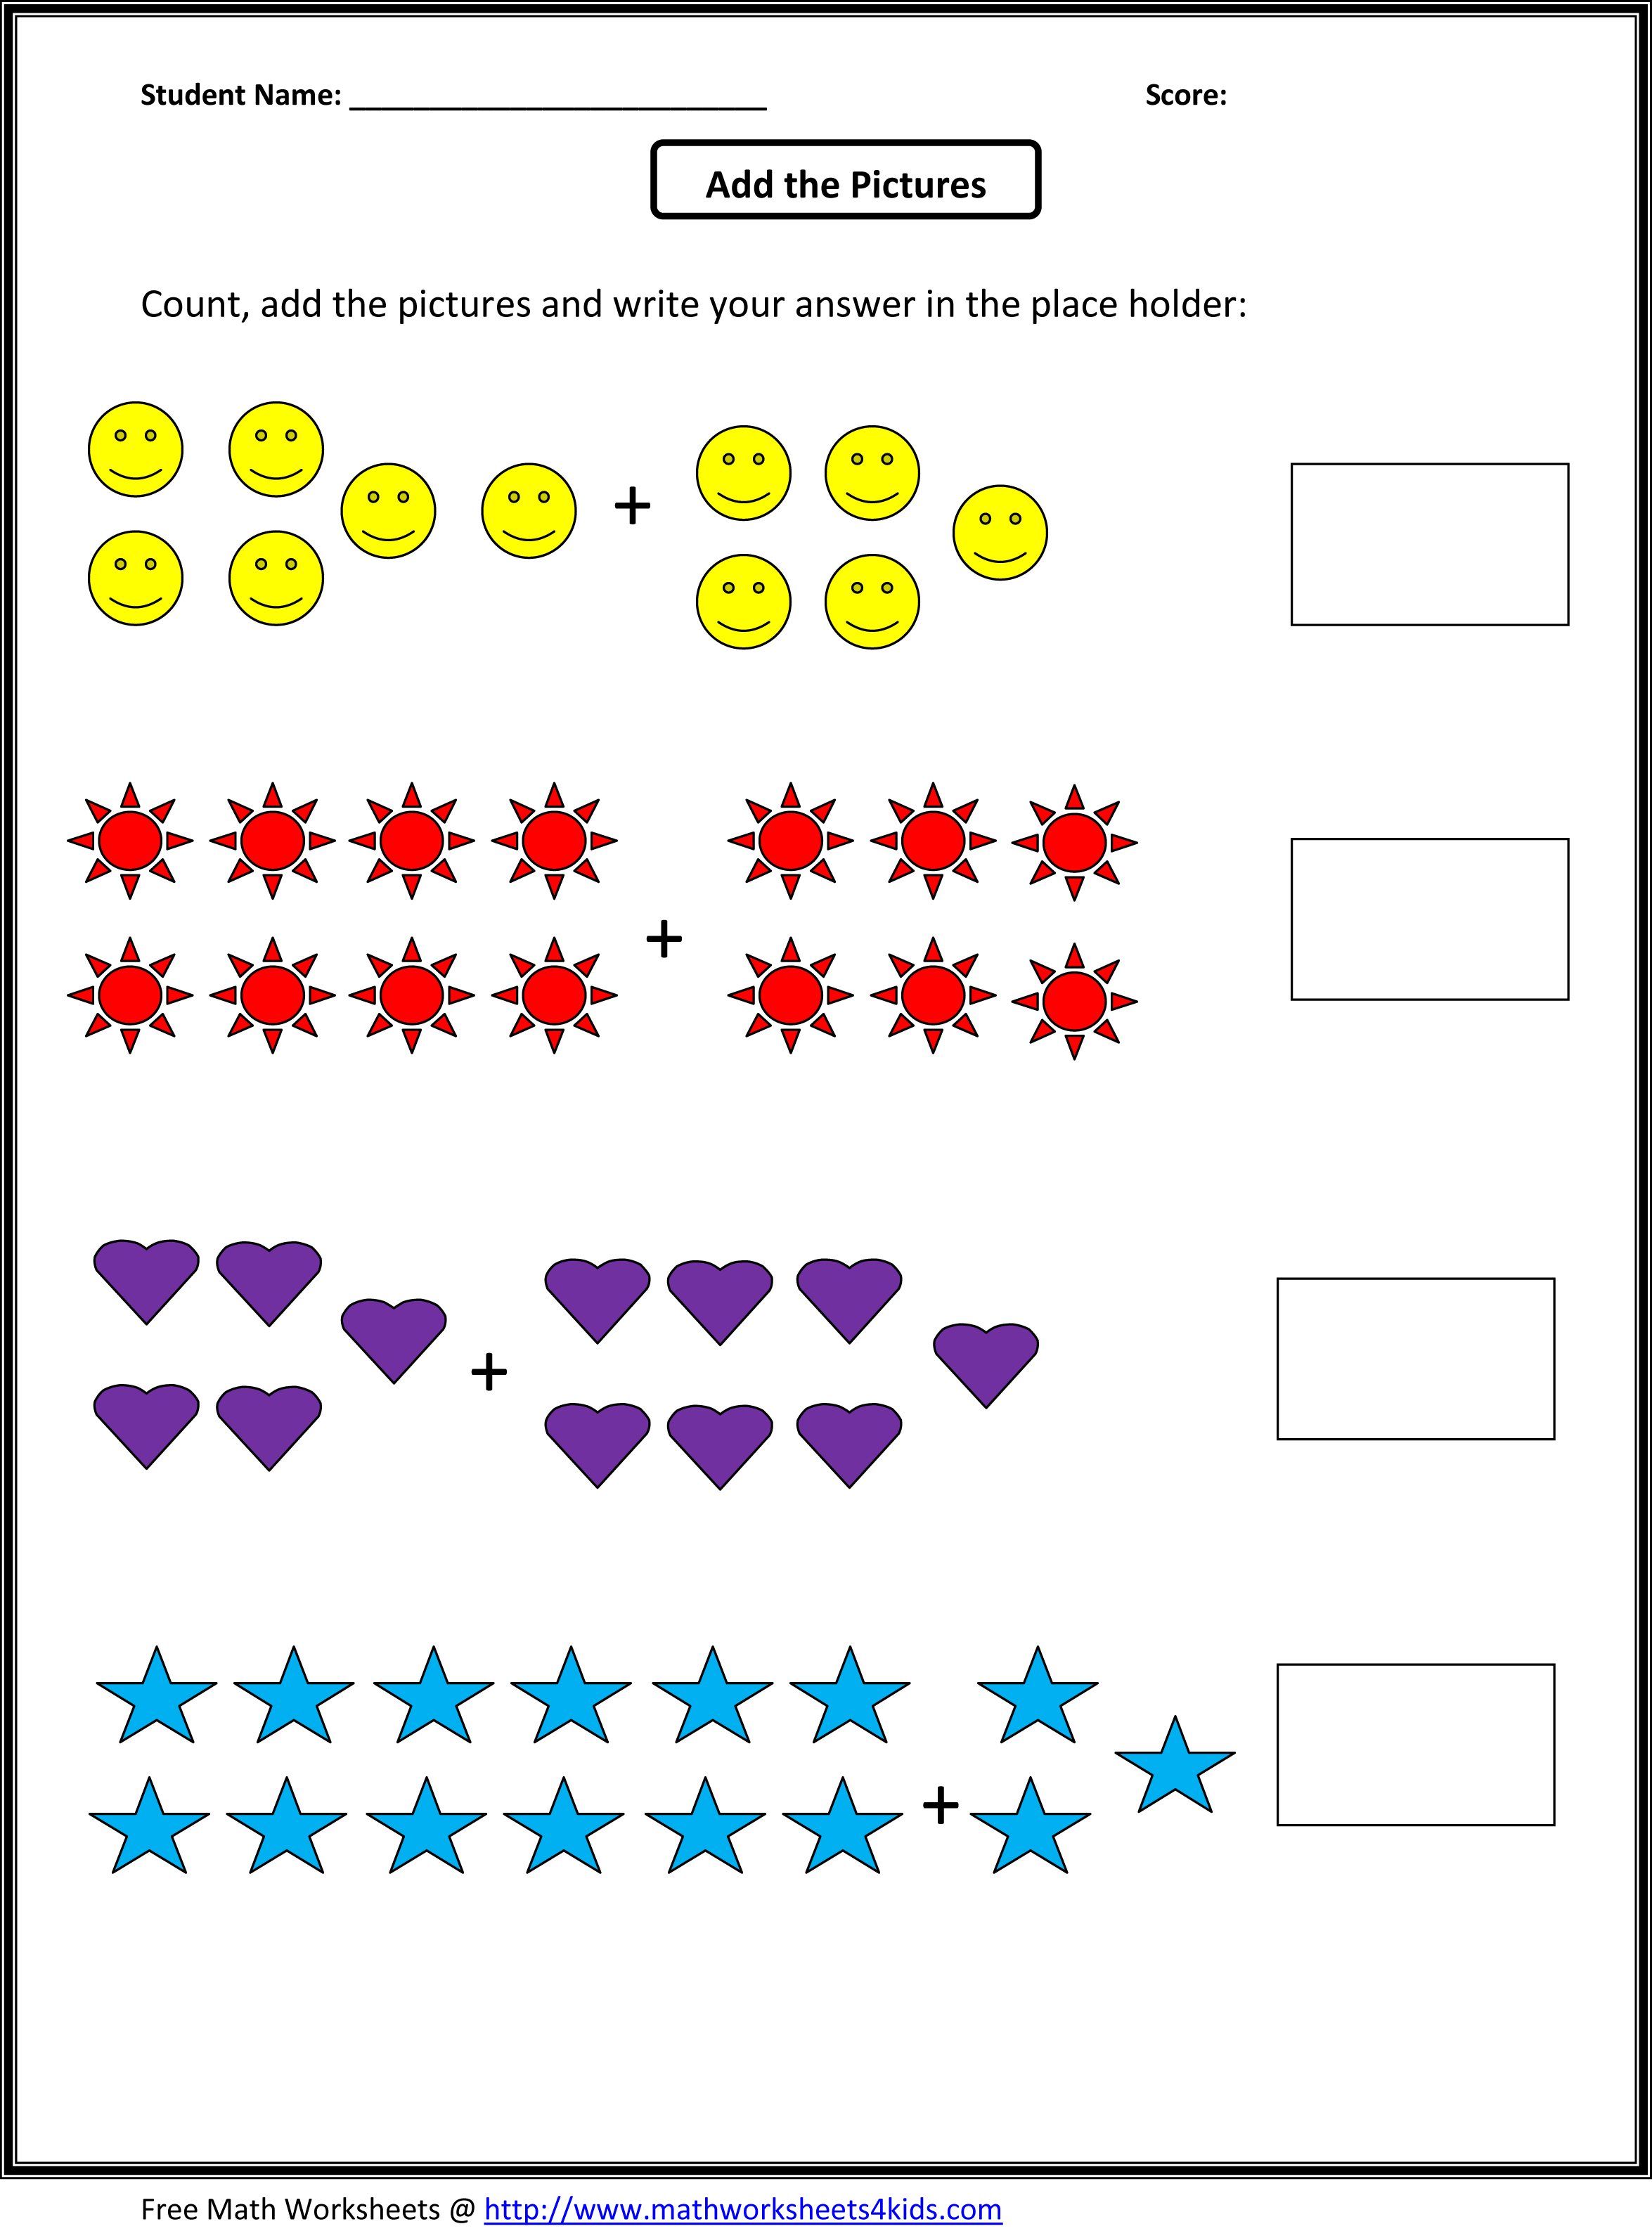 Weirdmailus  Gorgeous Grade  Maths Worksheet  Reocurent With Glamorous Math Worksheets For St Grade Free  Reocurent With Captivating Science Starters Worksheet Also Alphabet Practice Worksheets For Kindergarten In Addition Feet To Inches Worksheets And Driver Education Worksheets As Well As Multiply By Powers Of  Worksheet Additionally Observation And Inference Worksheets From Reocurentcom With Weirdmailus  Glamorous Grade  Maths Worksheet  Reocurent With Captivating Math Worksheets For St Grade Free  Reocurent And Gorgeous Science Starters Worksheet Also Alphabet Practice Worksheets For Kindergarten In Addition Feet To Inches Worksheets From Reocurentcom